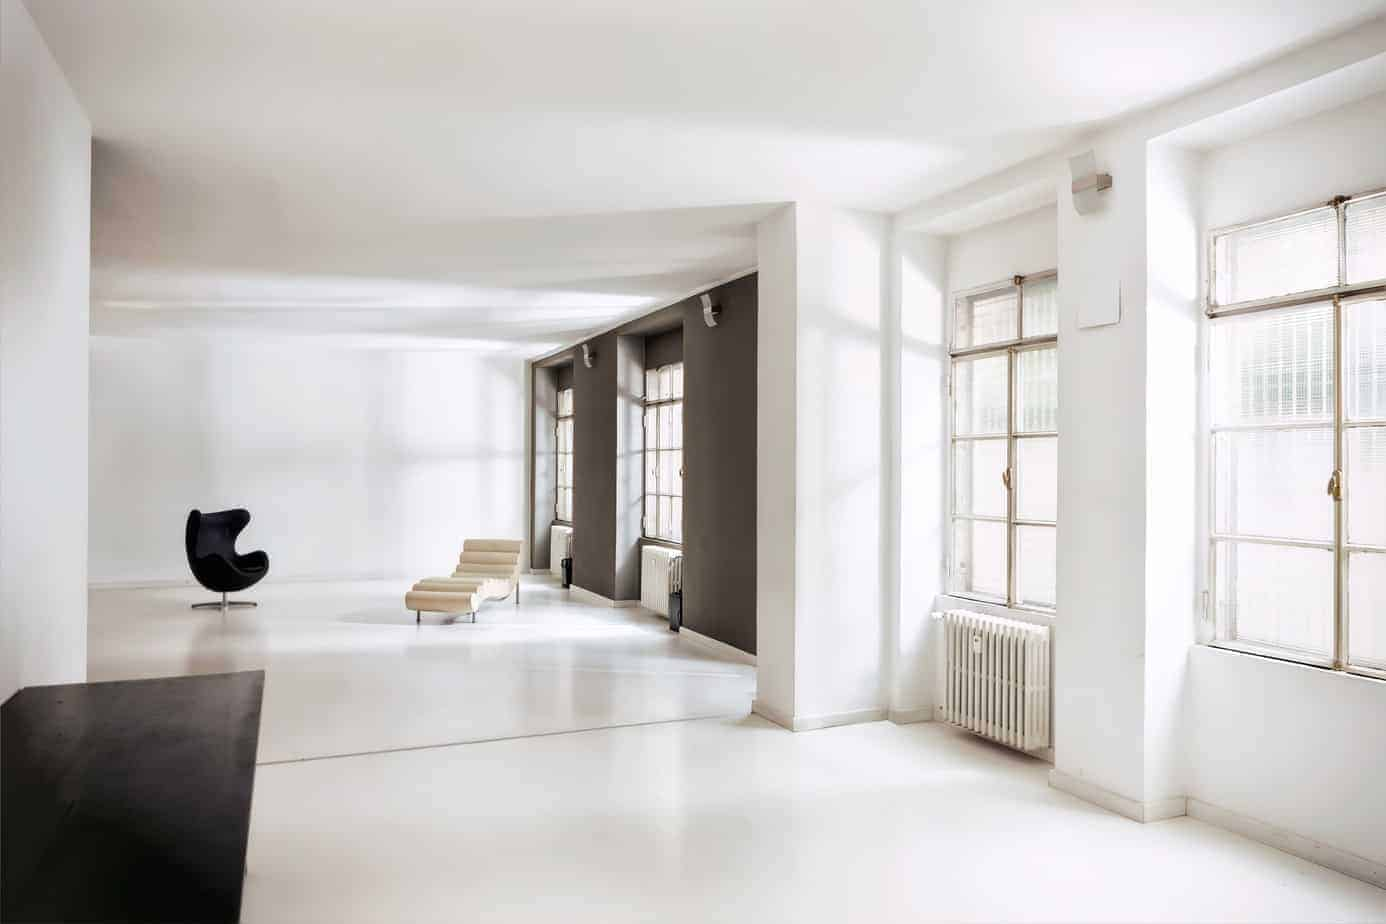 Luminous and airy studio for photo shoots and exhbitions